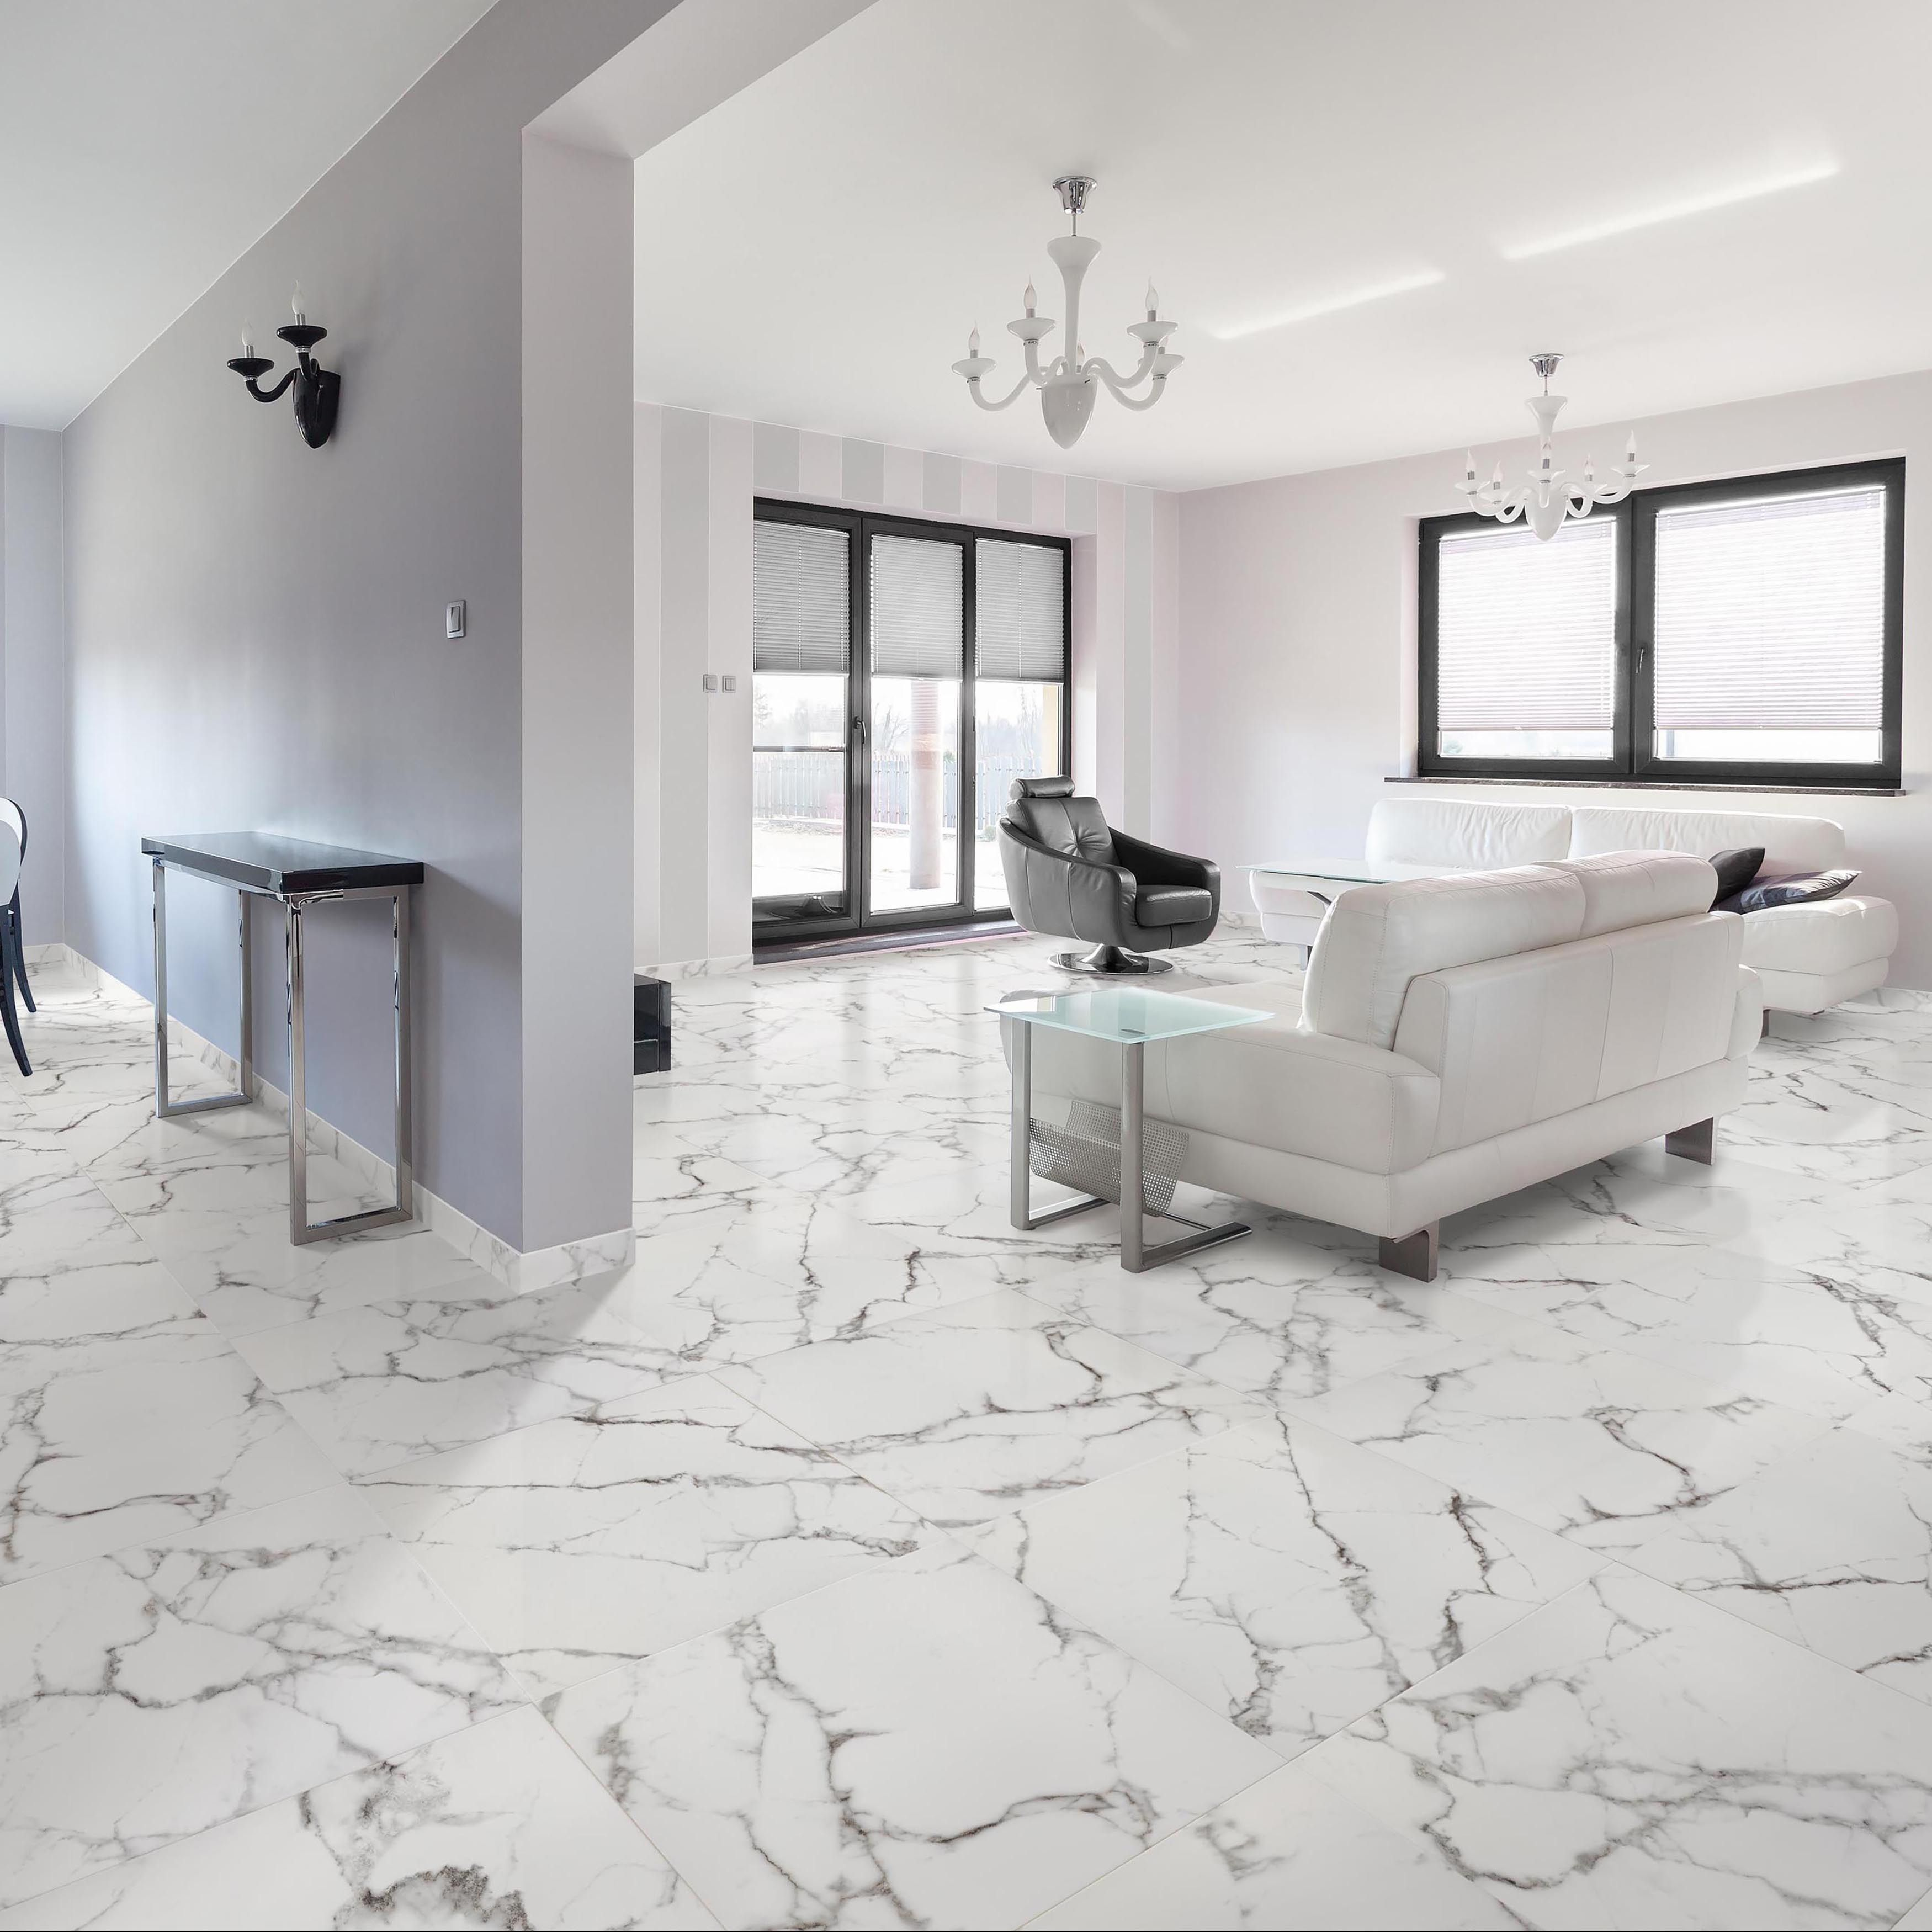 Somertile 18x18 Inch Classic Calacatta Ceramic Floor And Wall Tile